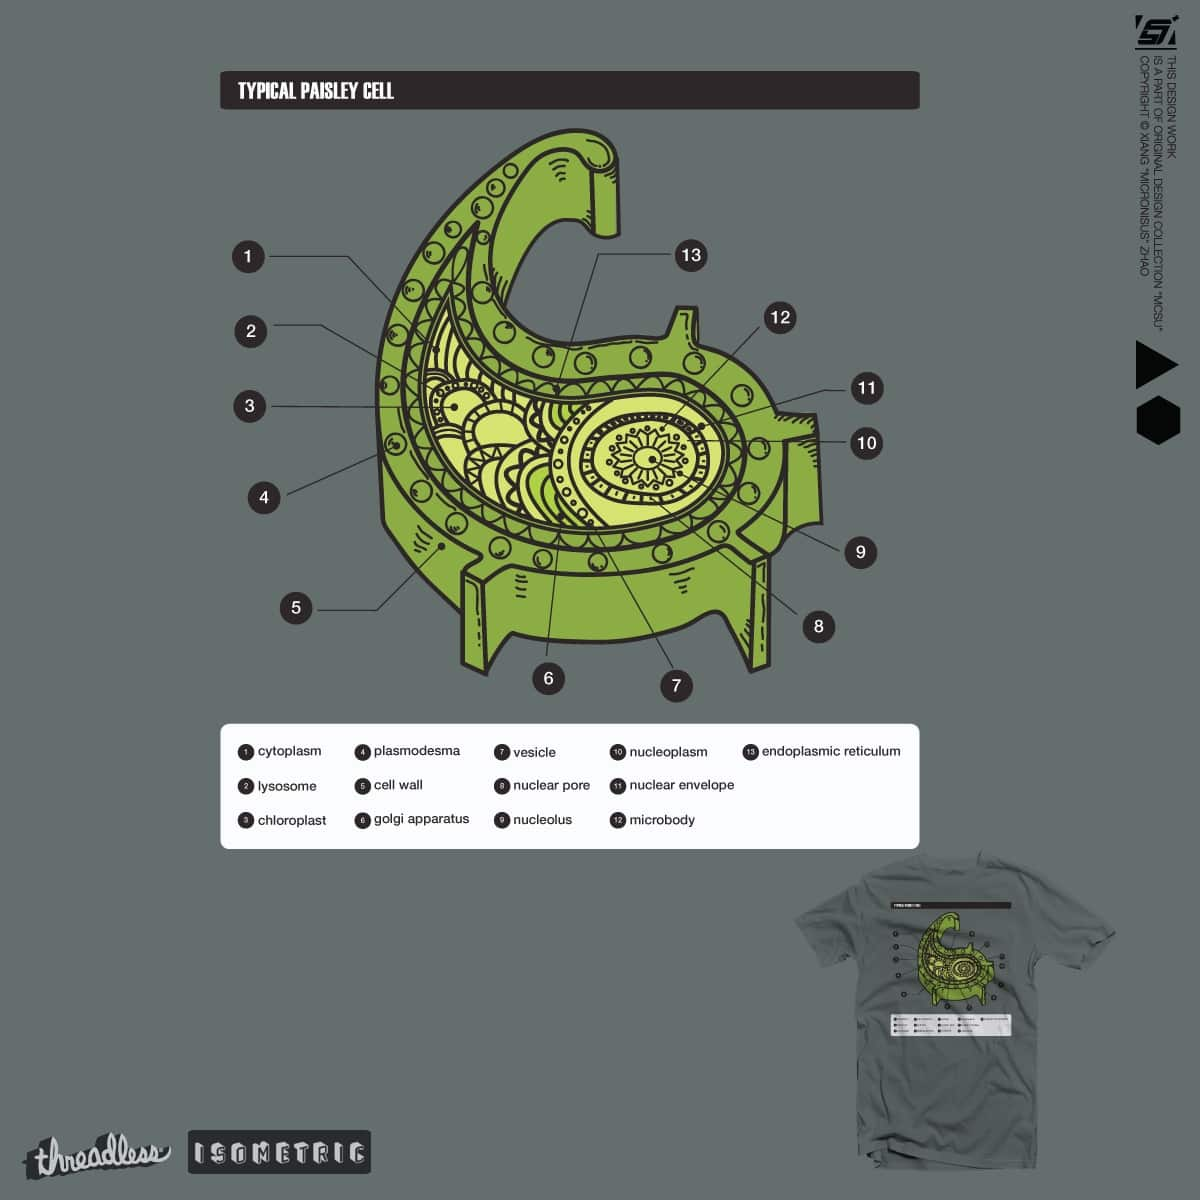 TYPICAL PAISLEY CELL by micronisus on Threadless